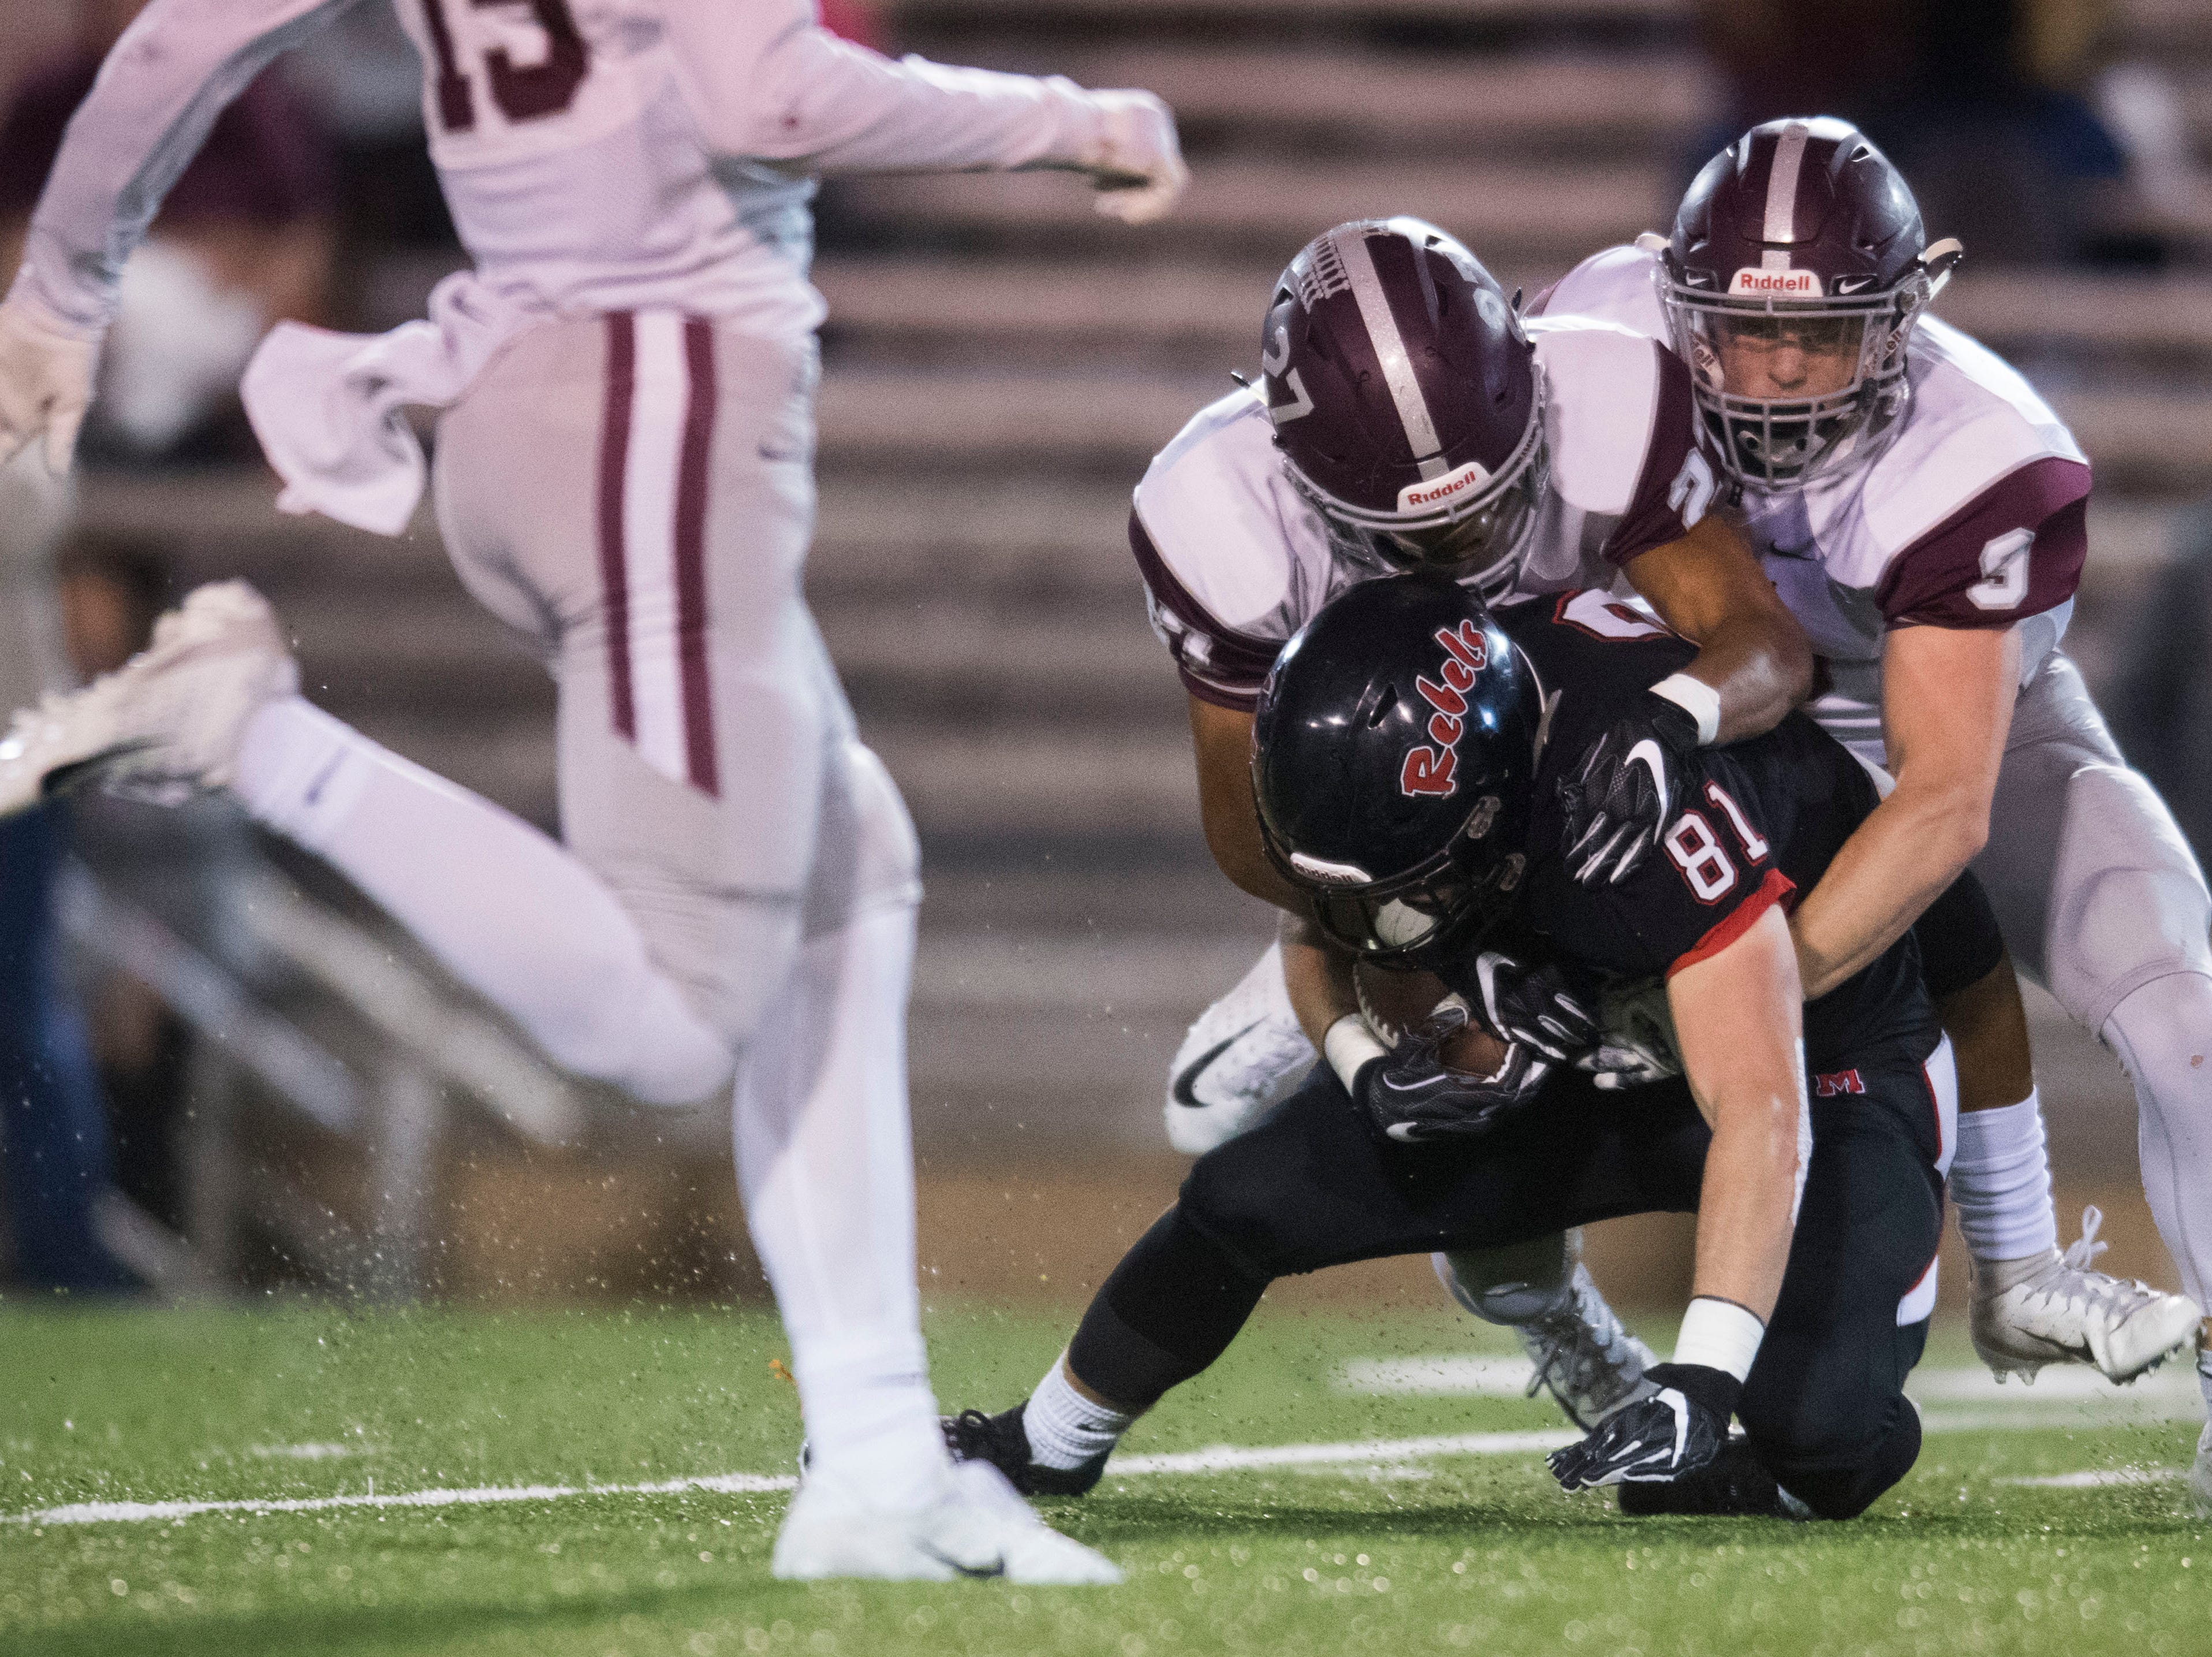 Bearden's Julian Kendrick (27) tackles Maryville's Brody Sloan (81) during a first round playoff game between Maryville and Bearden at Maryville, Friday, Nov. 2, 2018. Maryville defeated Bearden 28-7.